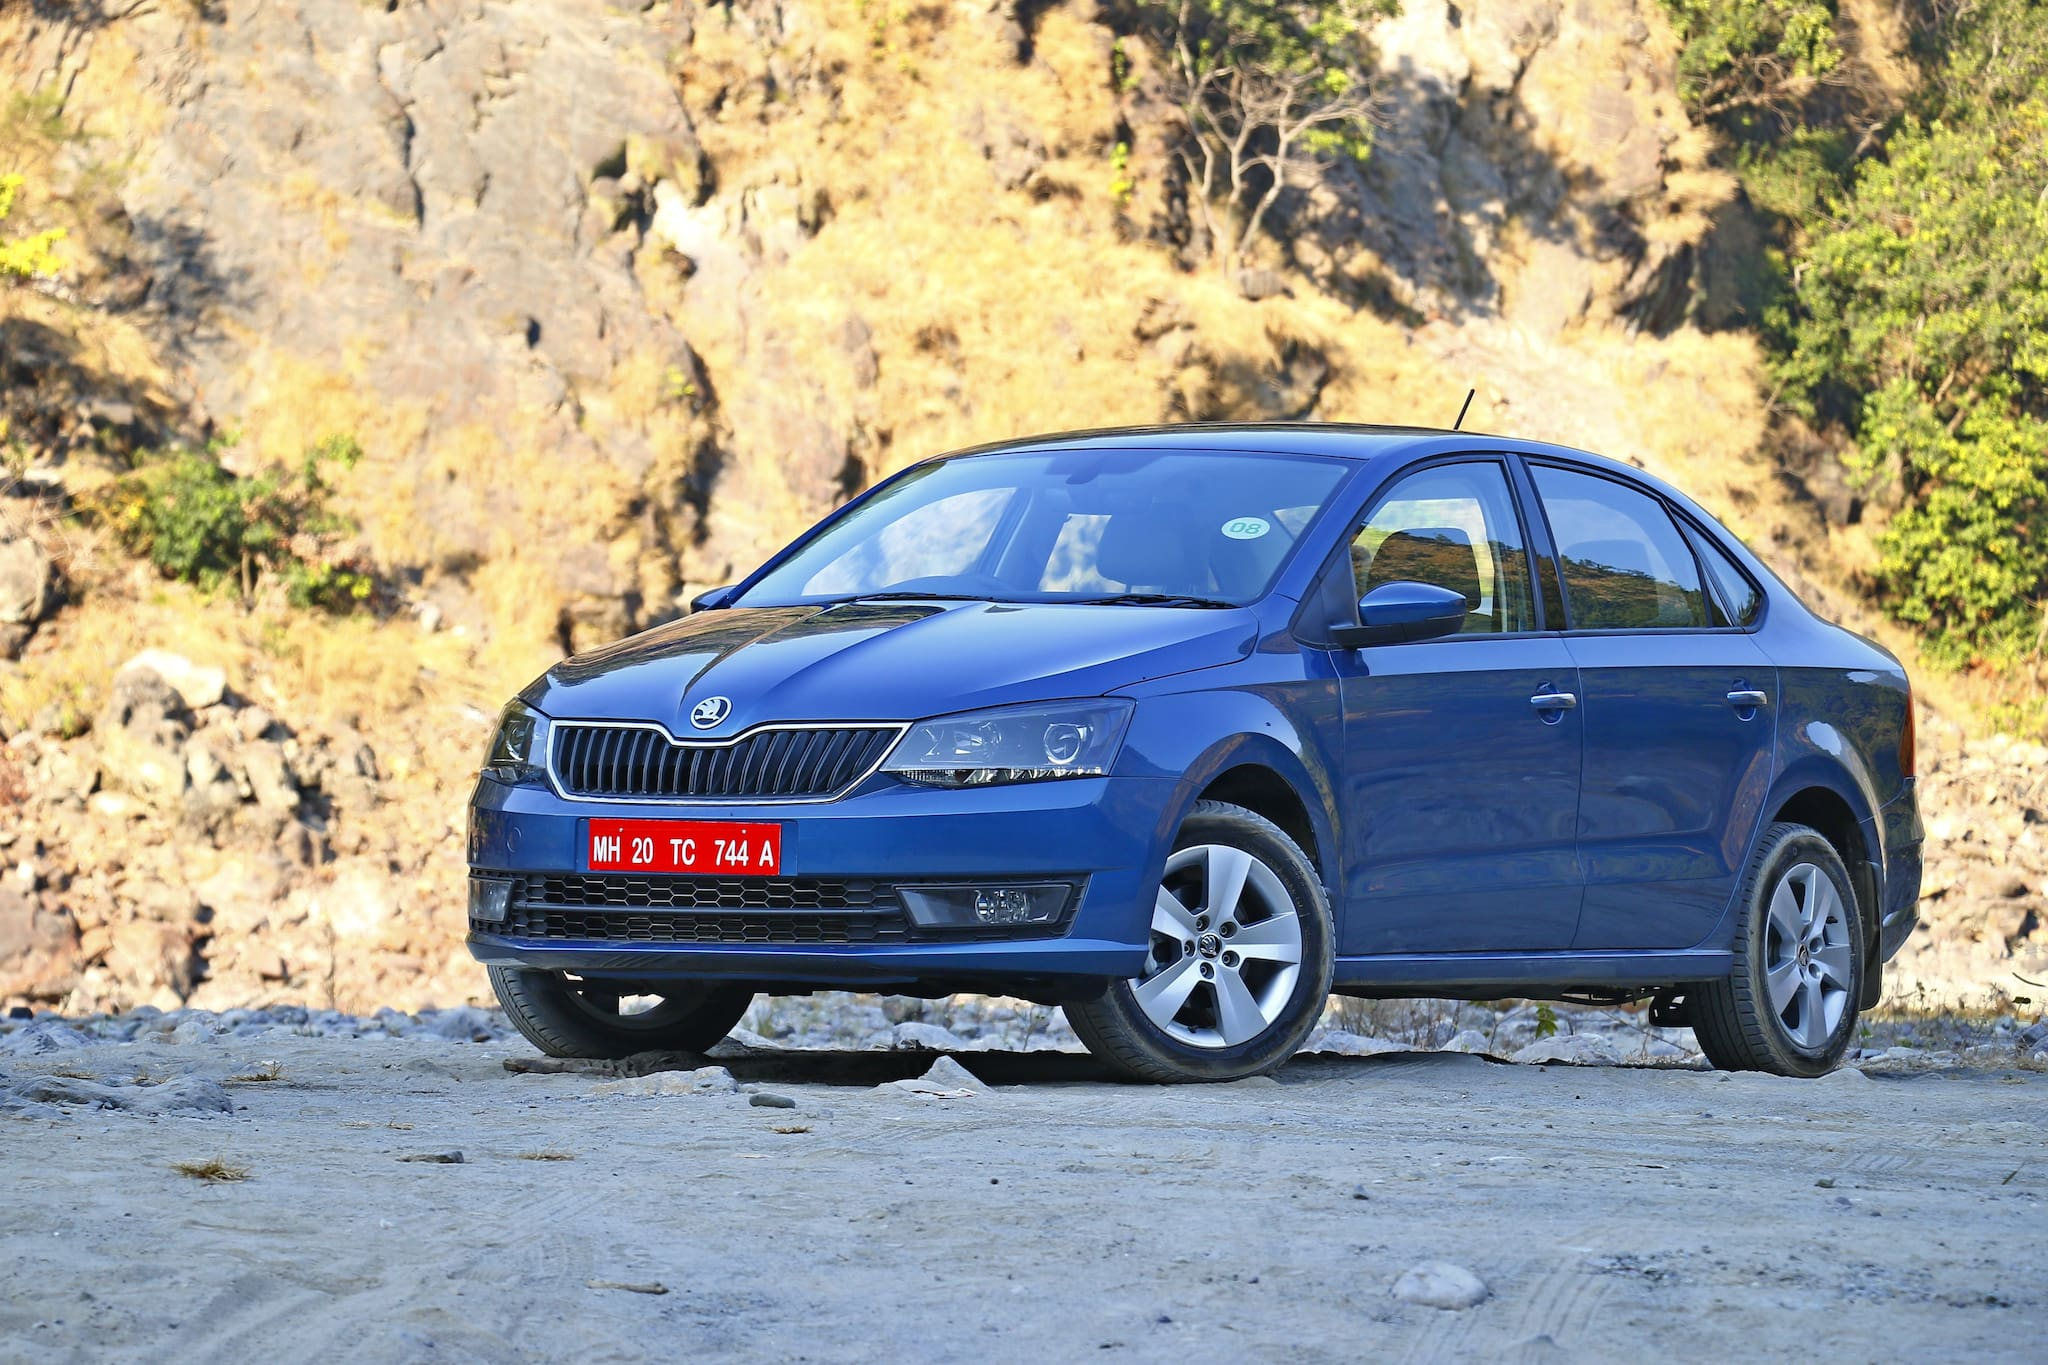 Skoda Rapid Facelift - First Drive Review